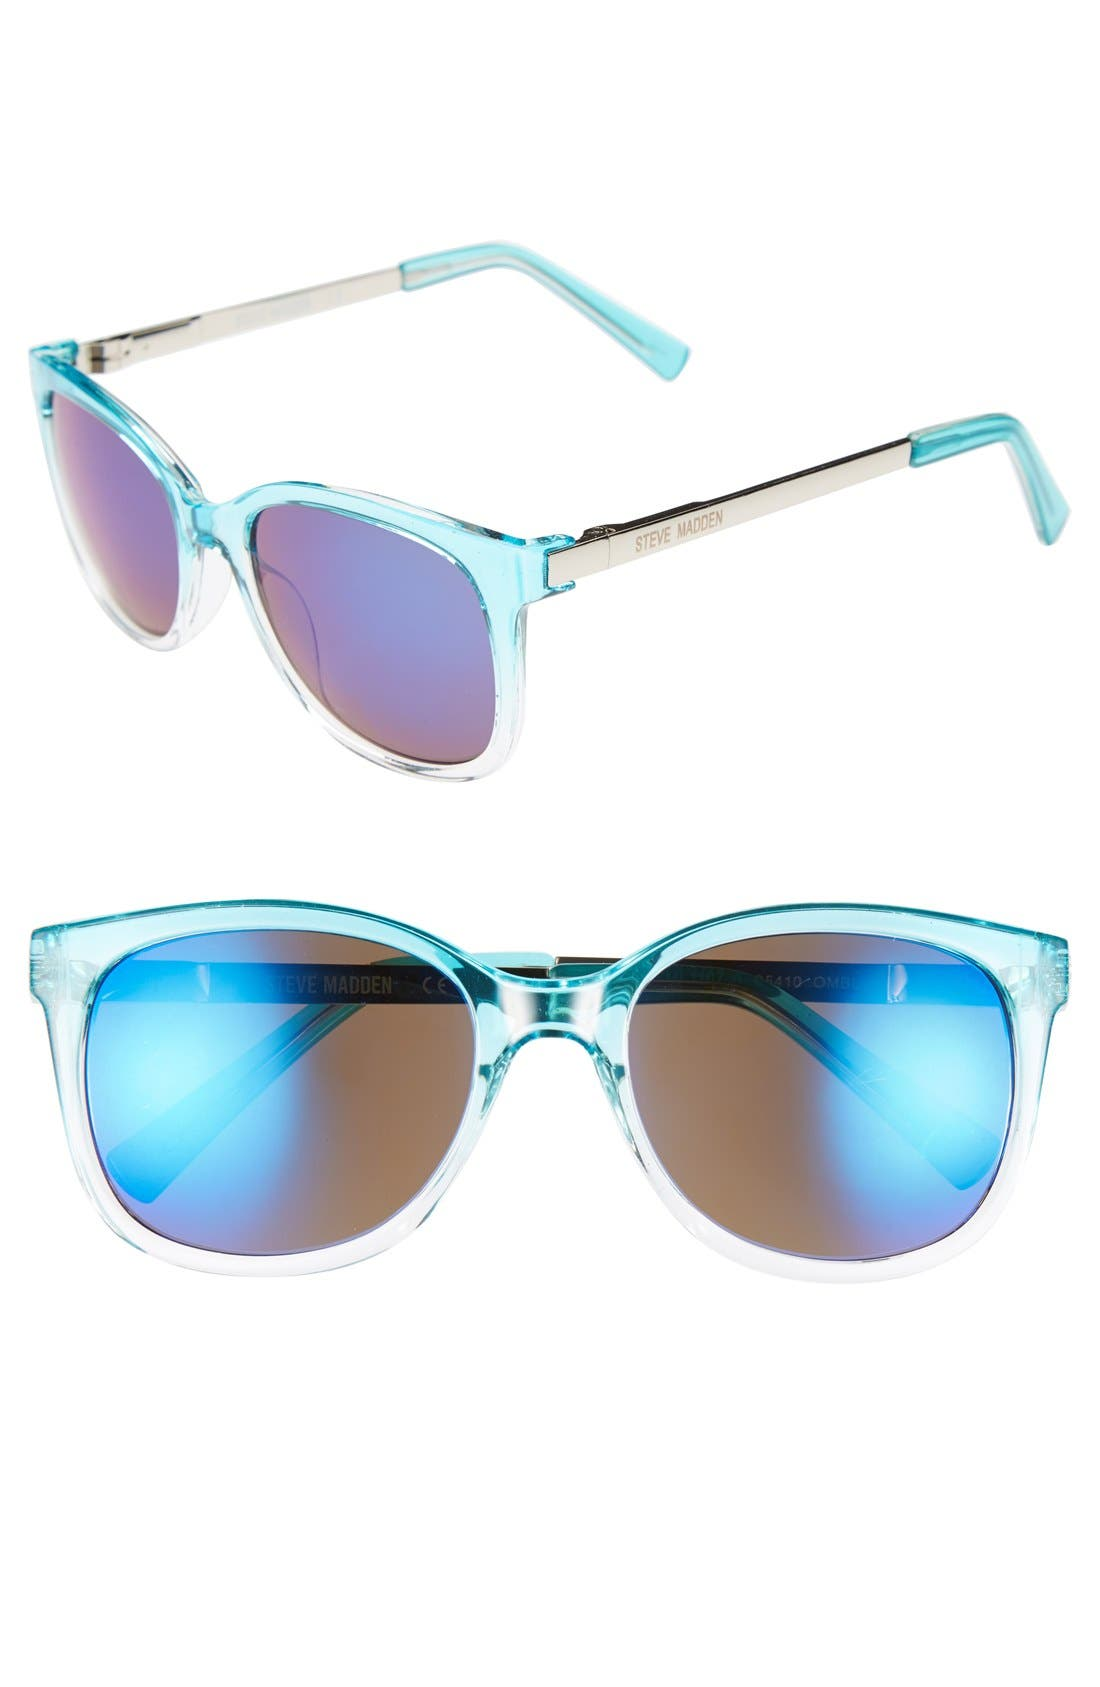 Main Image - Steve Madden 52mm Sunglasses